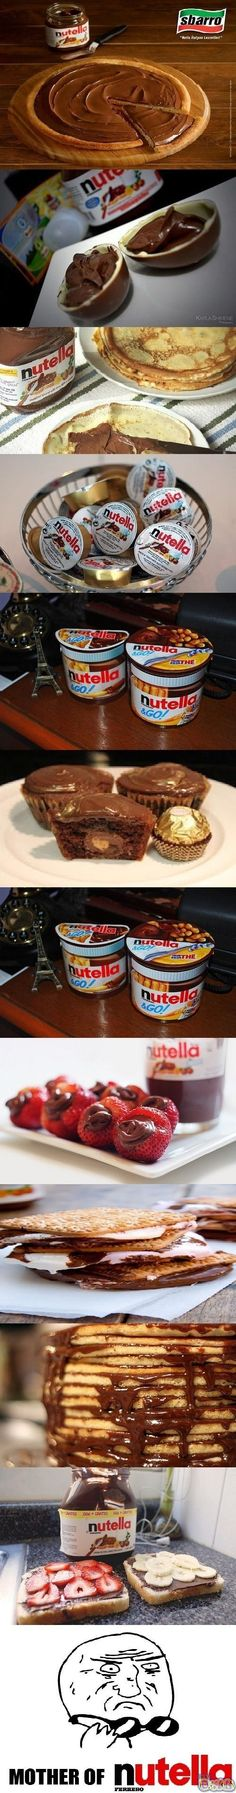 Sweet #mother of #nutella www.justdwl.net